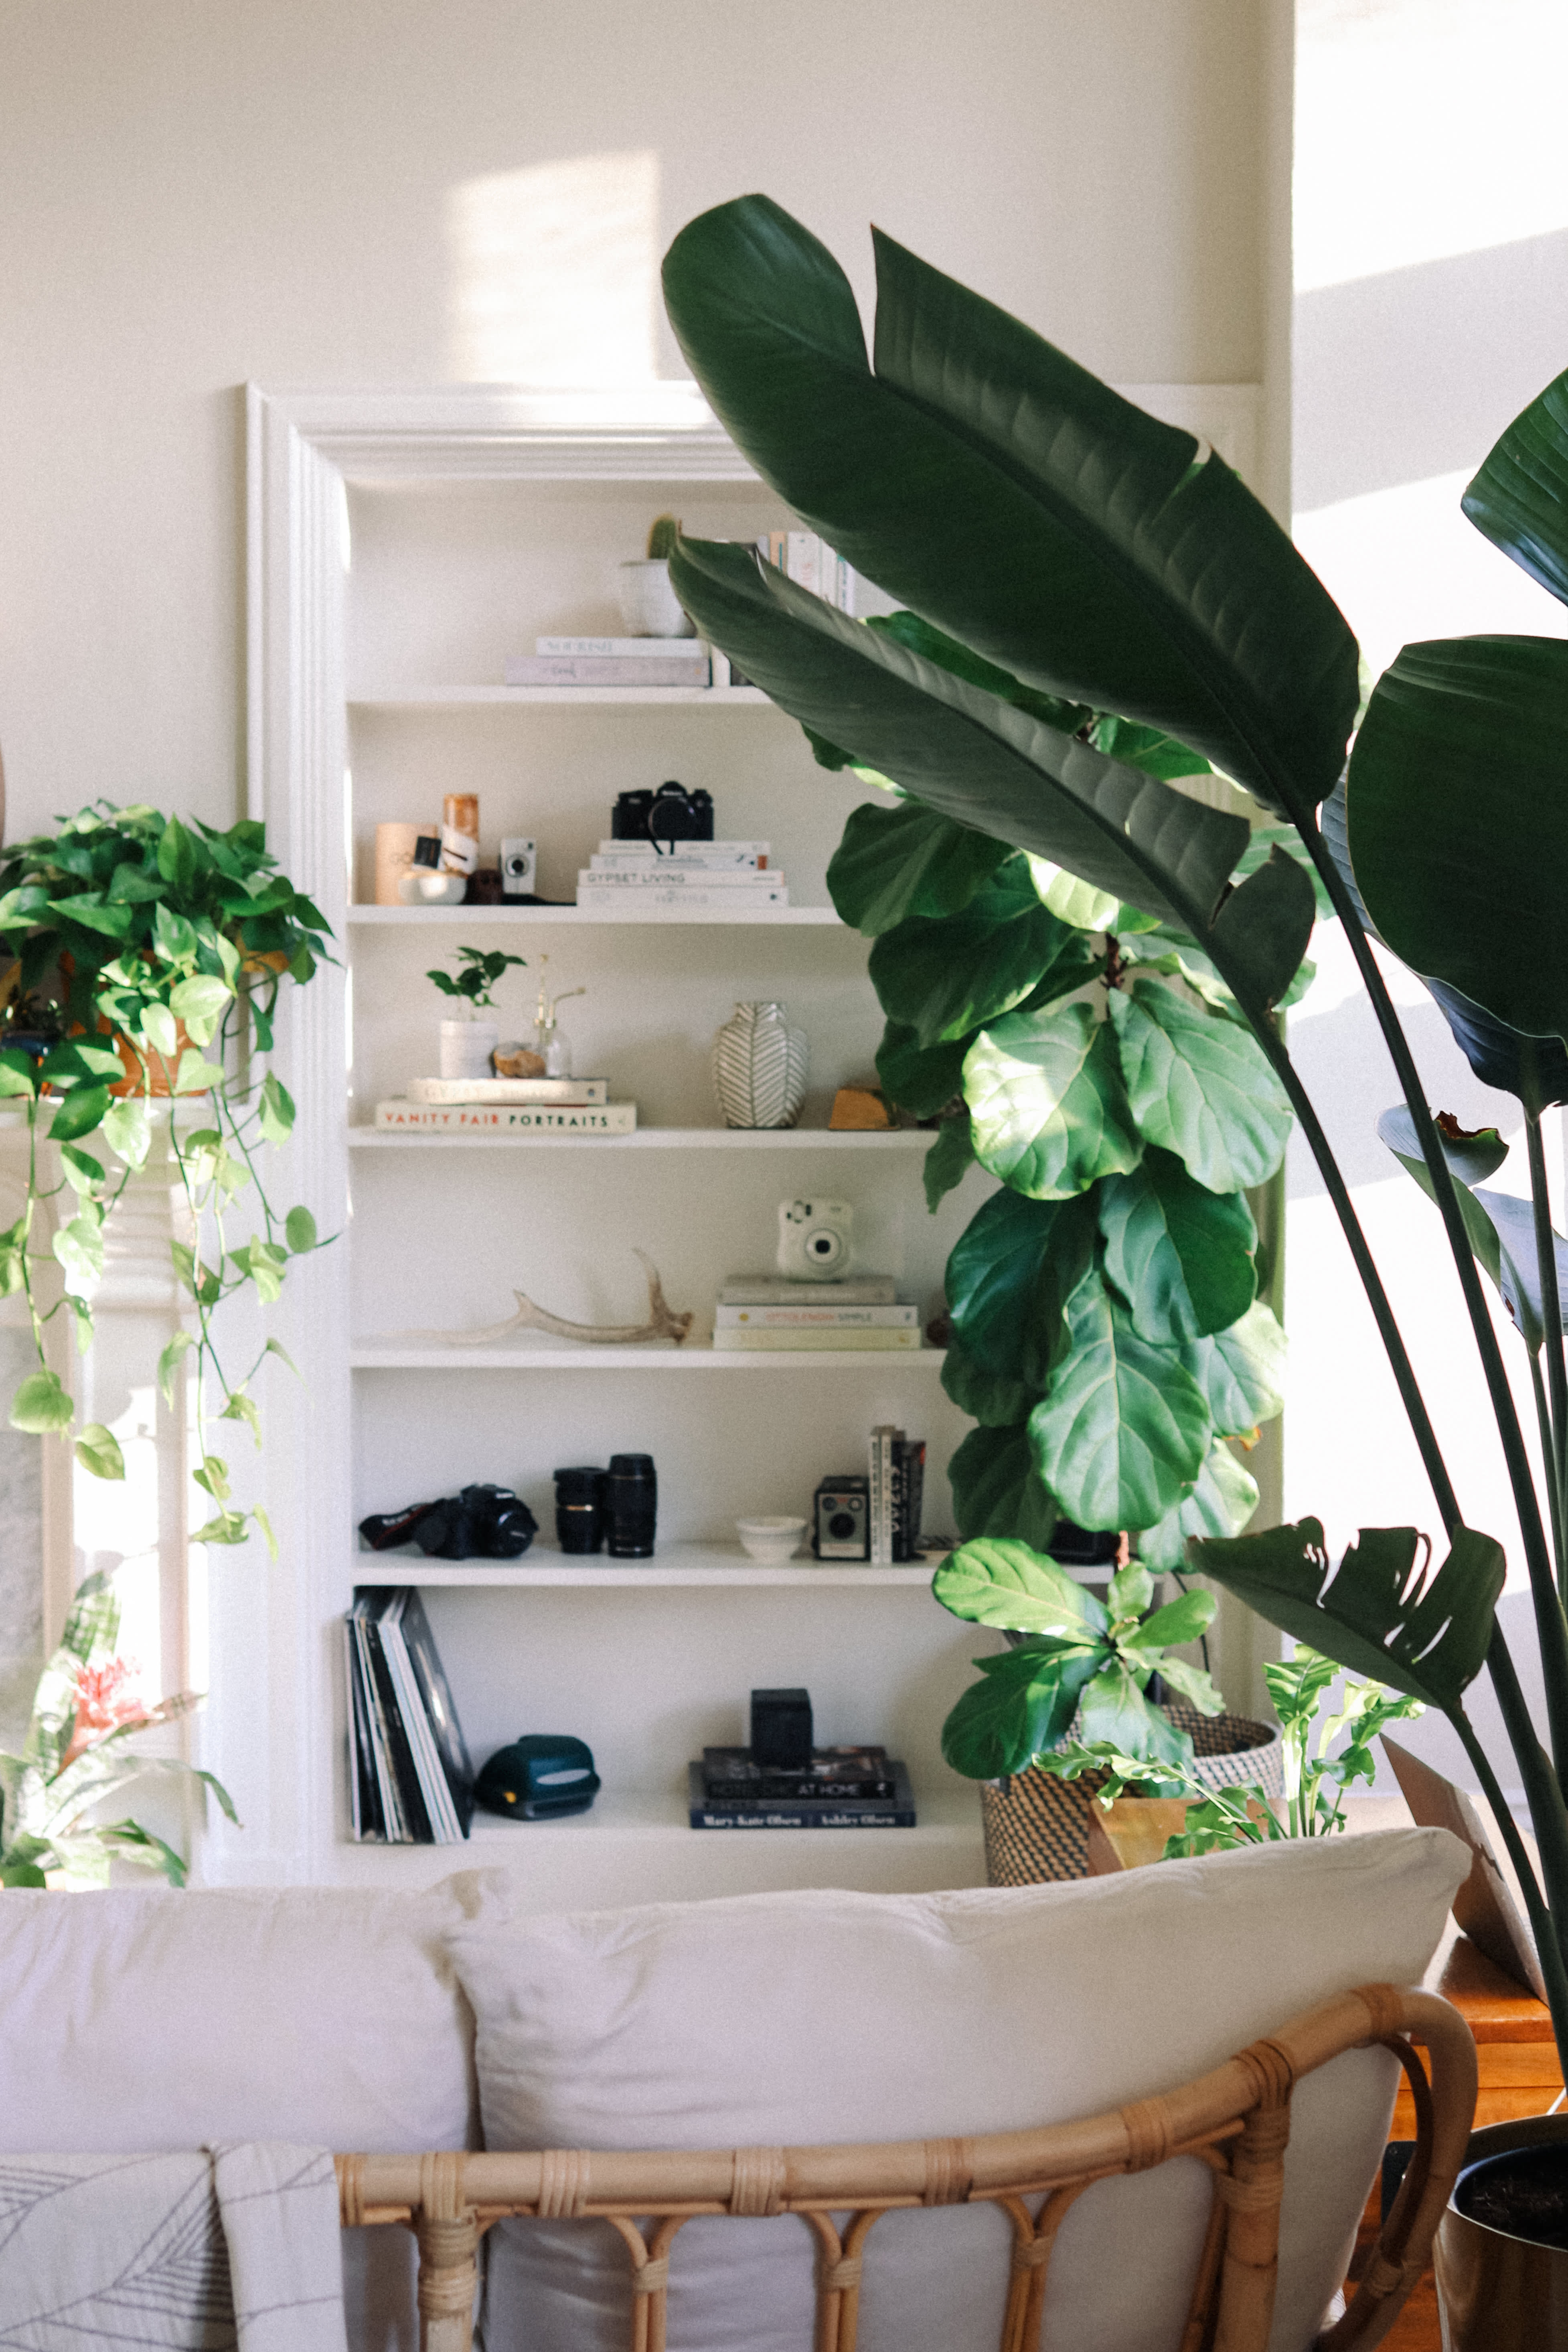 Plant Filled Simple Chic Studio Apartment Decor Photos ... on bathroom filled with plants, bedroom filled with plants, house full of plants, house books,